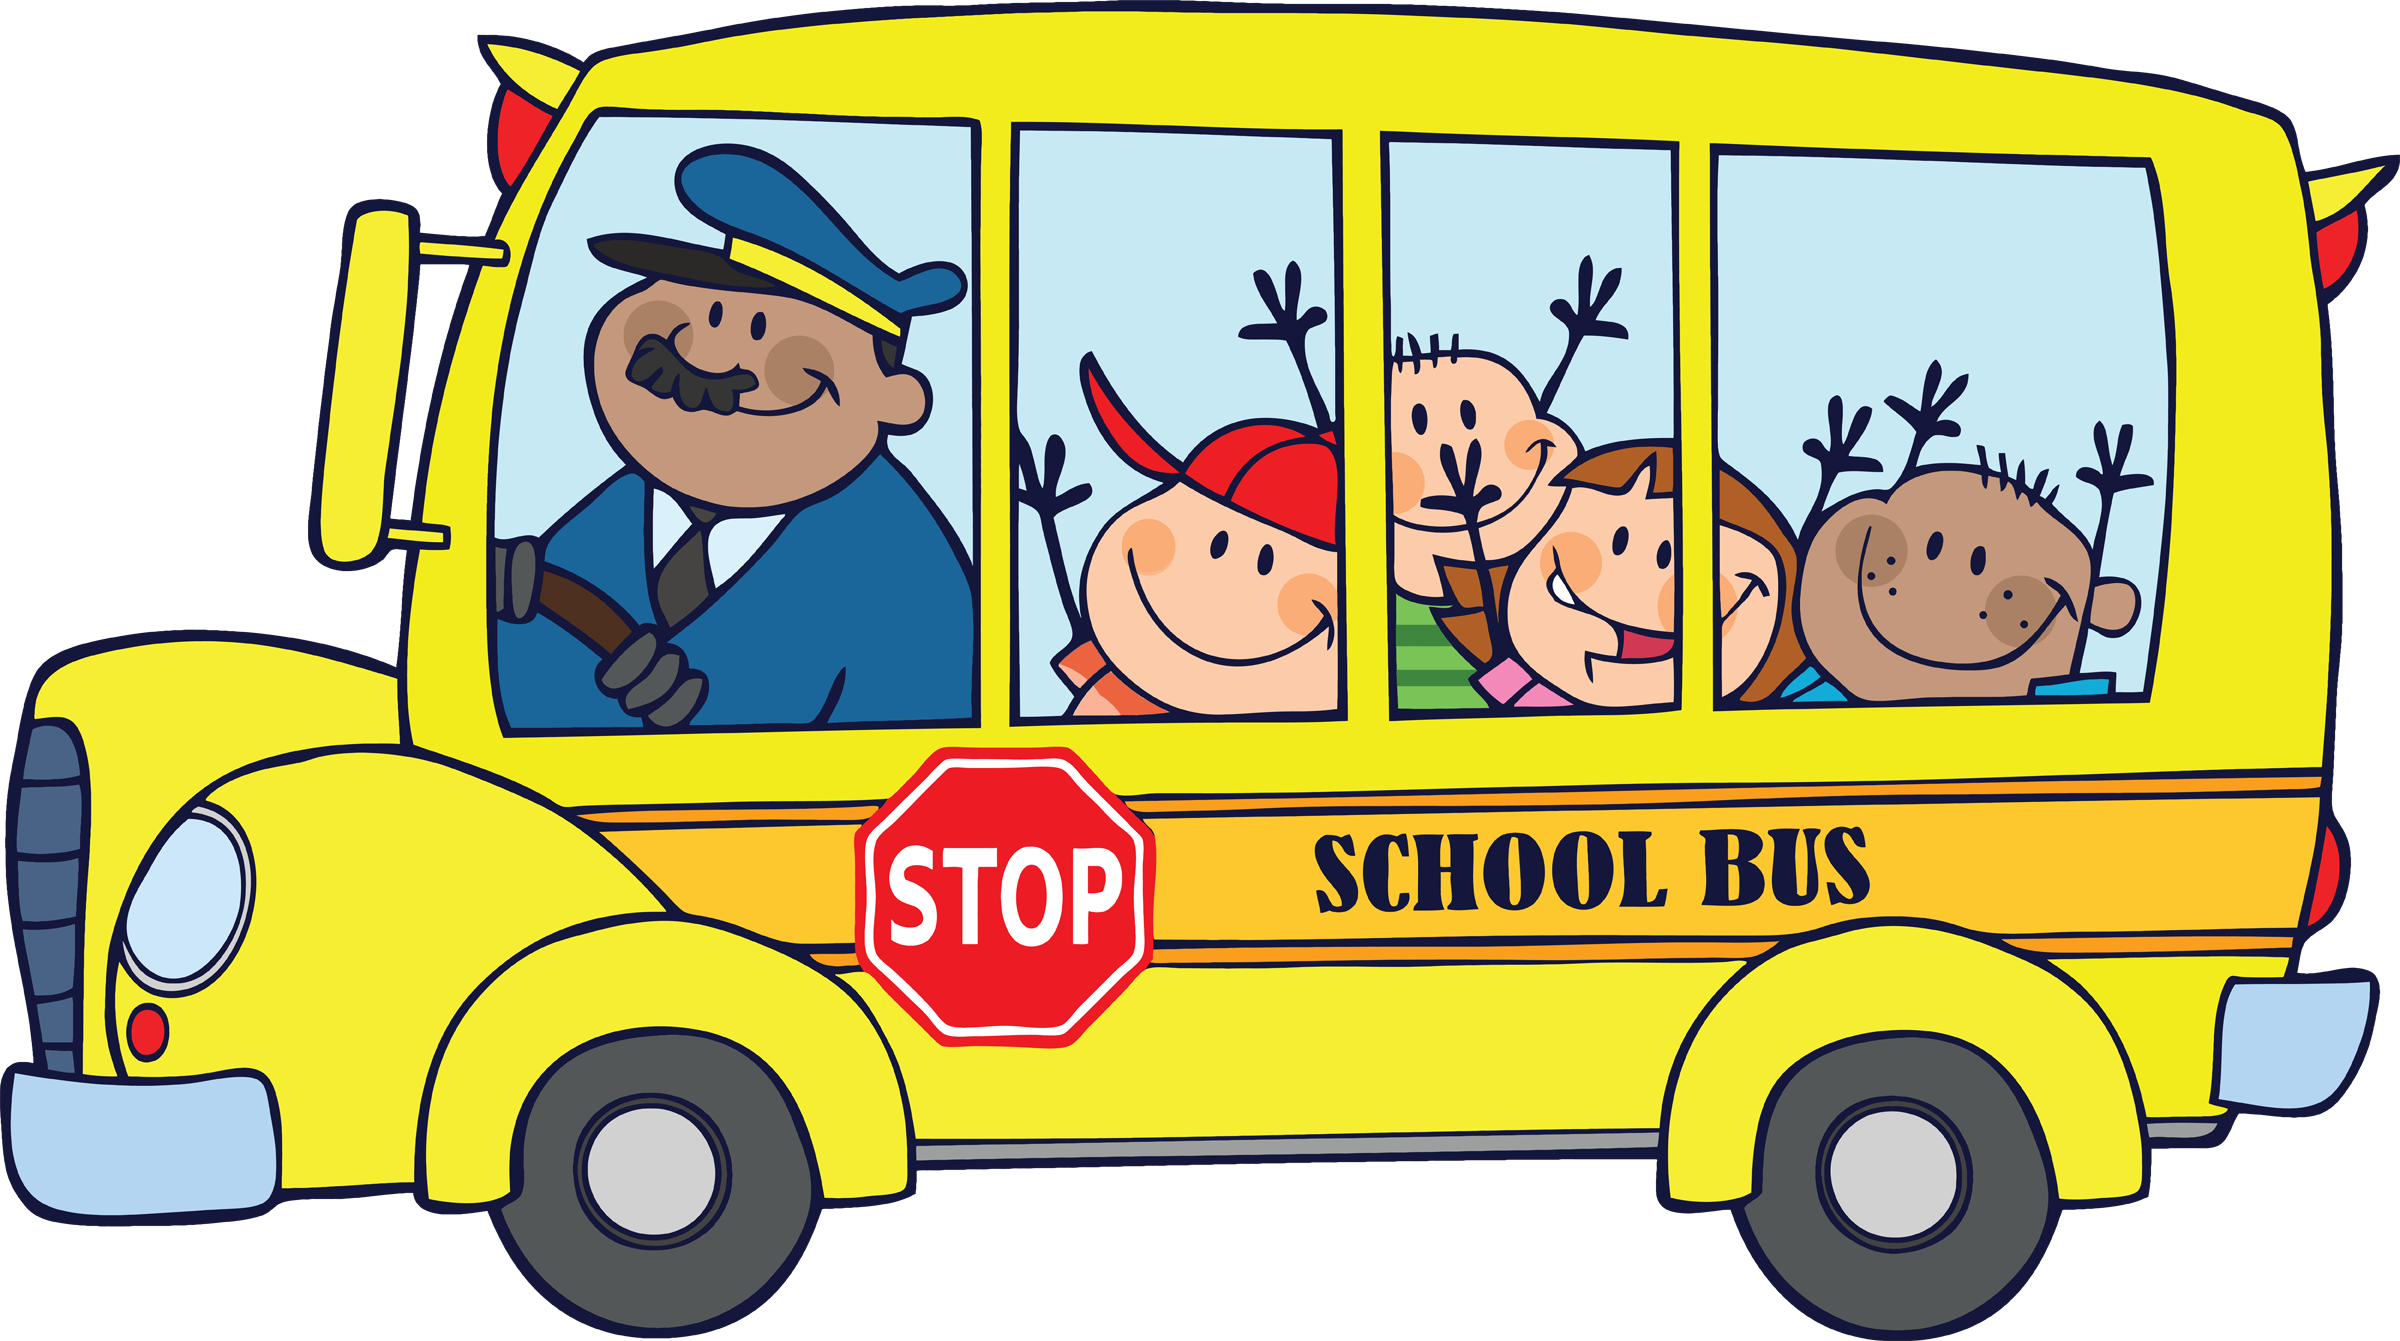 School bus clip art png. Collection of clipart